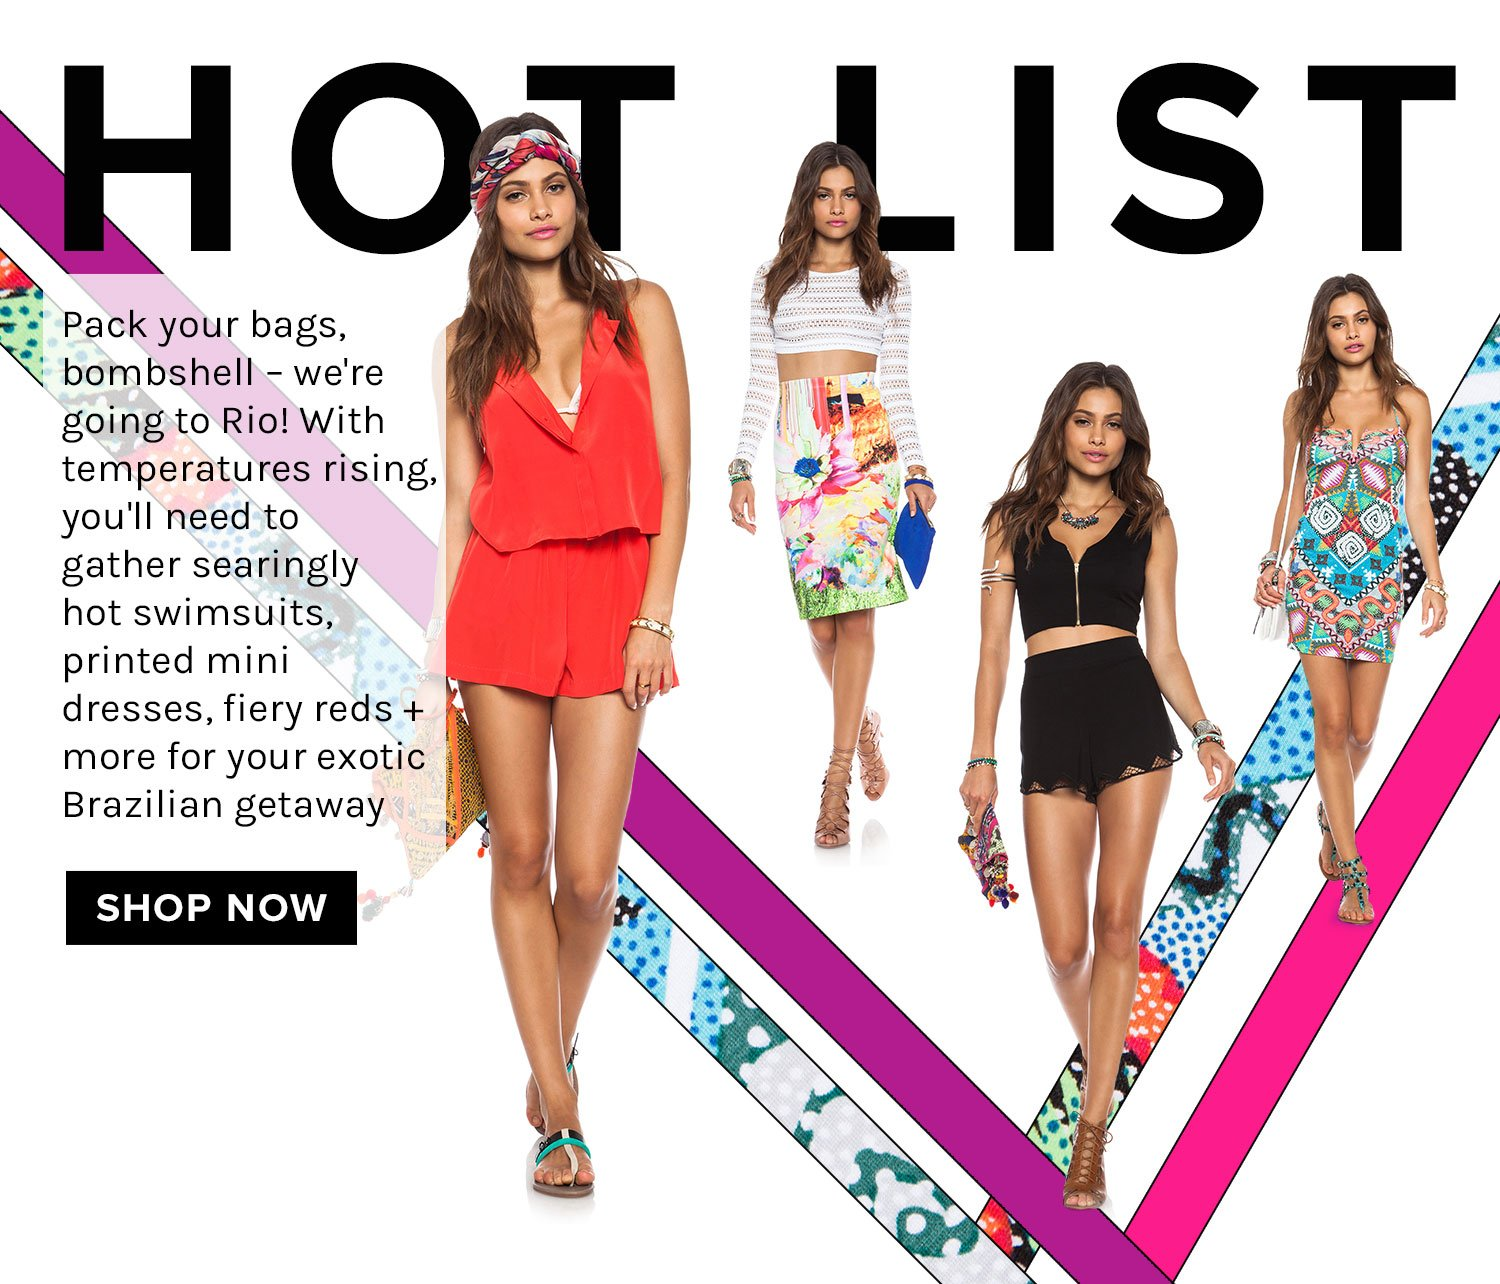 HOT LIST.Pack your bags, bombshell - we're going to Rio! With temperatures rising, you'll need to gather searingly hot swimsuits, printed mini dresses, fiery reds + more for your exotic Brazilian getaway.